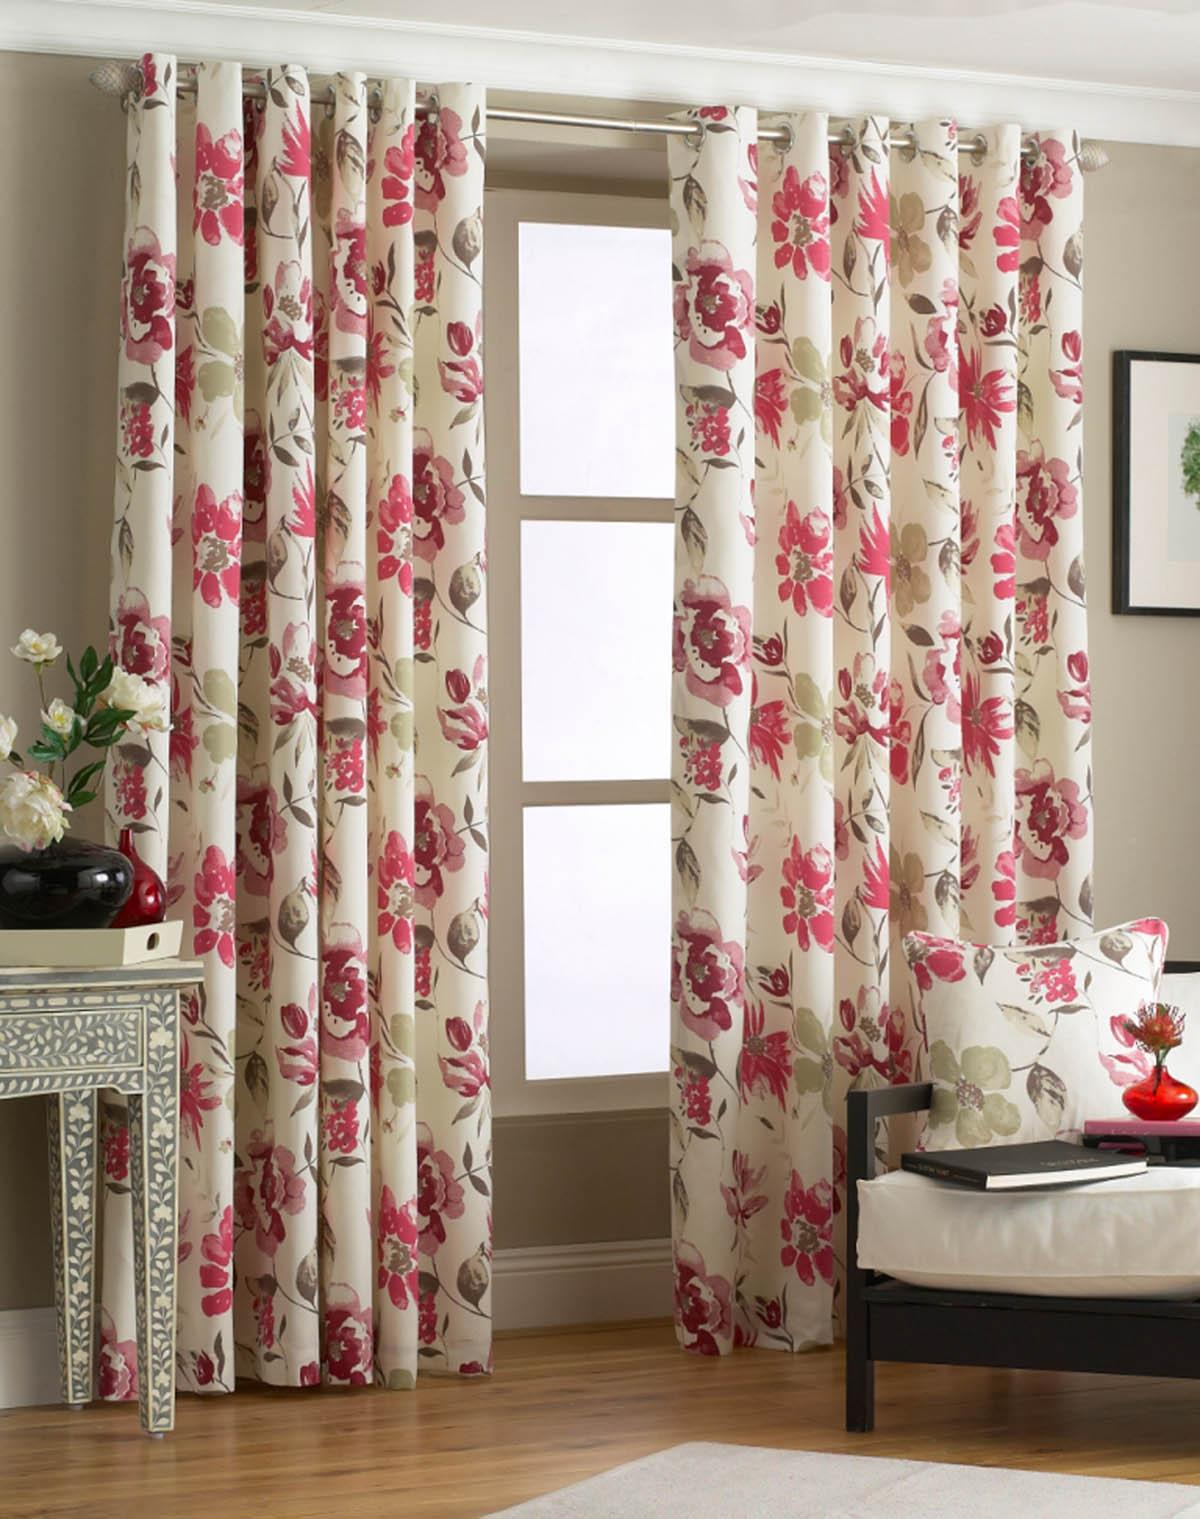 Curtain Deals Buy Cheap Pink Eyelet Curtains Compare Curtains And Blinds